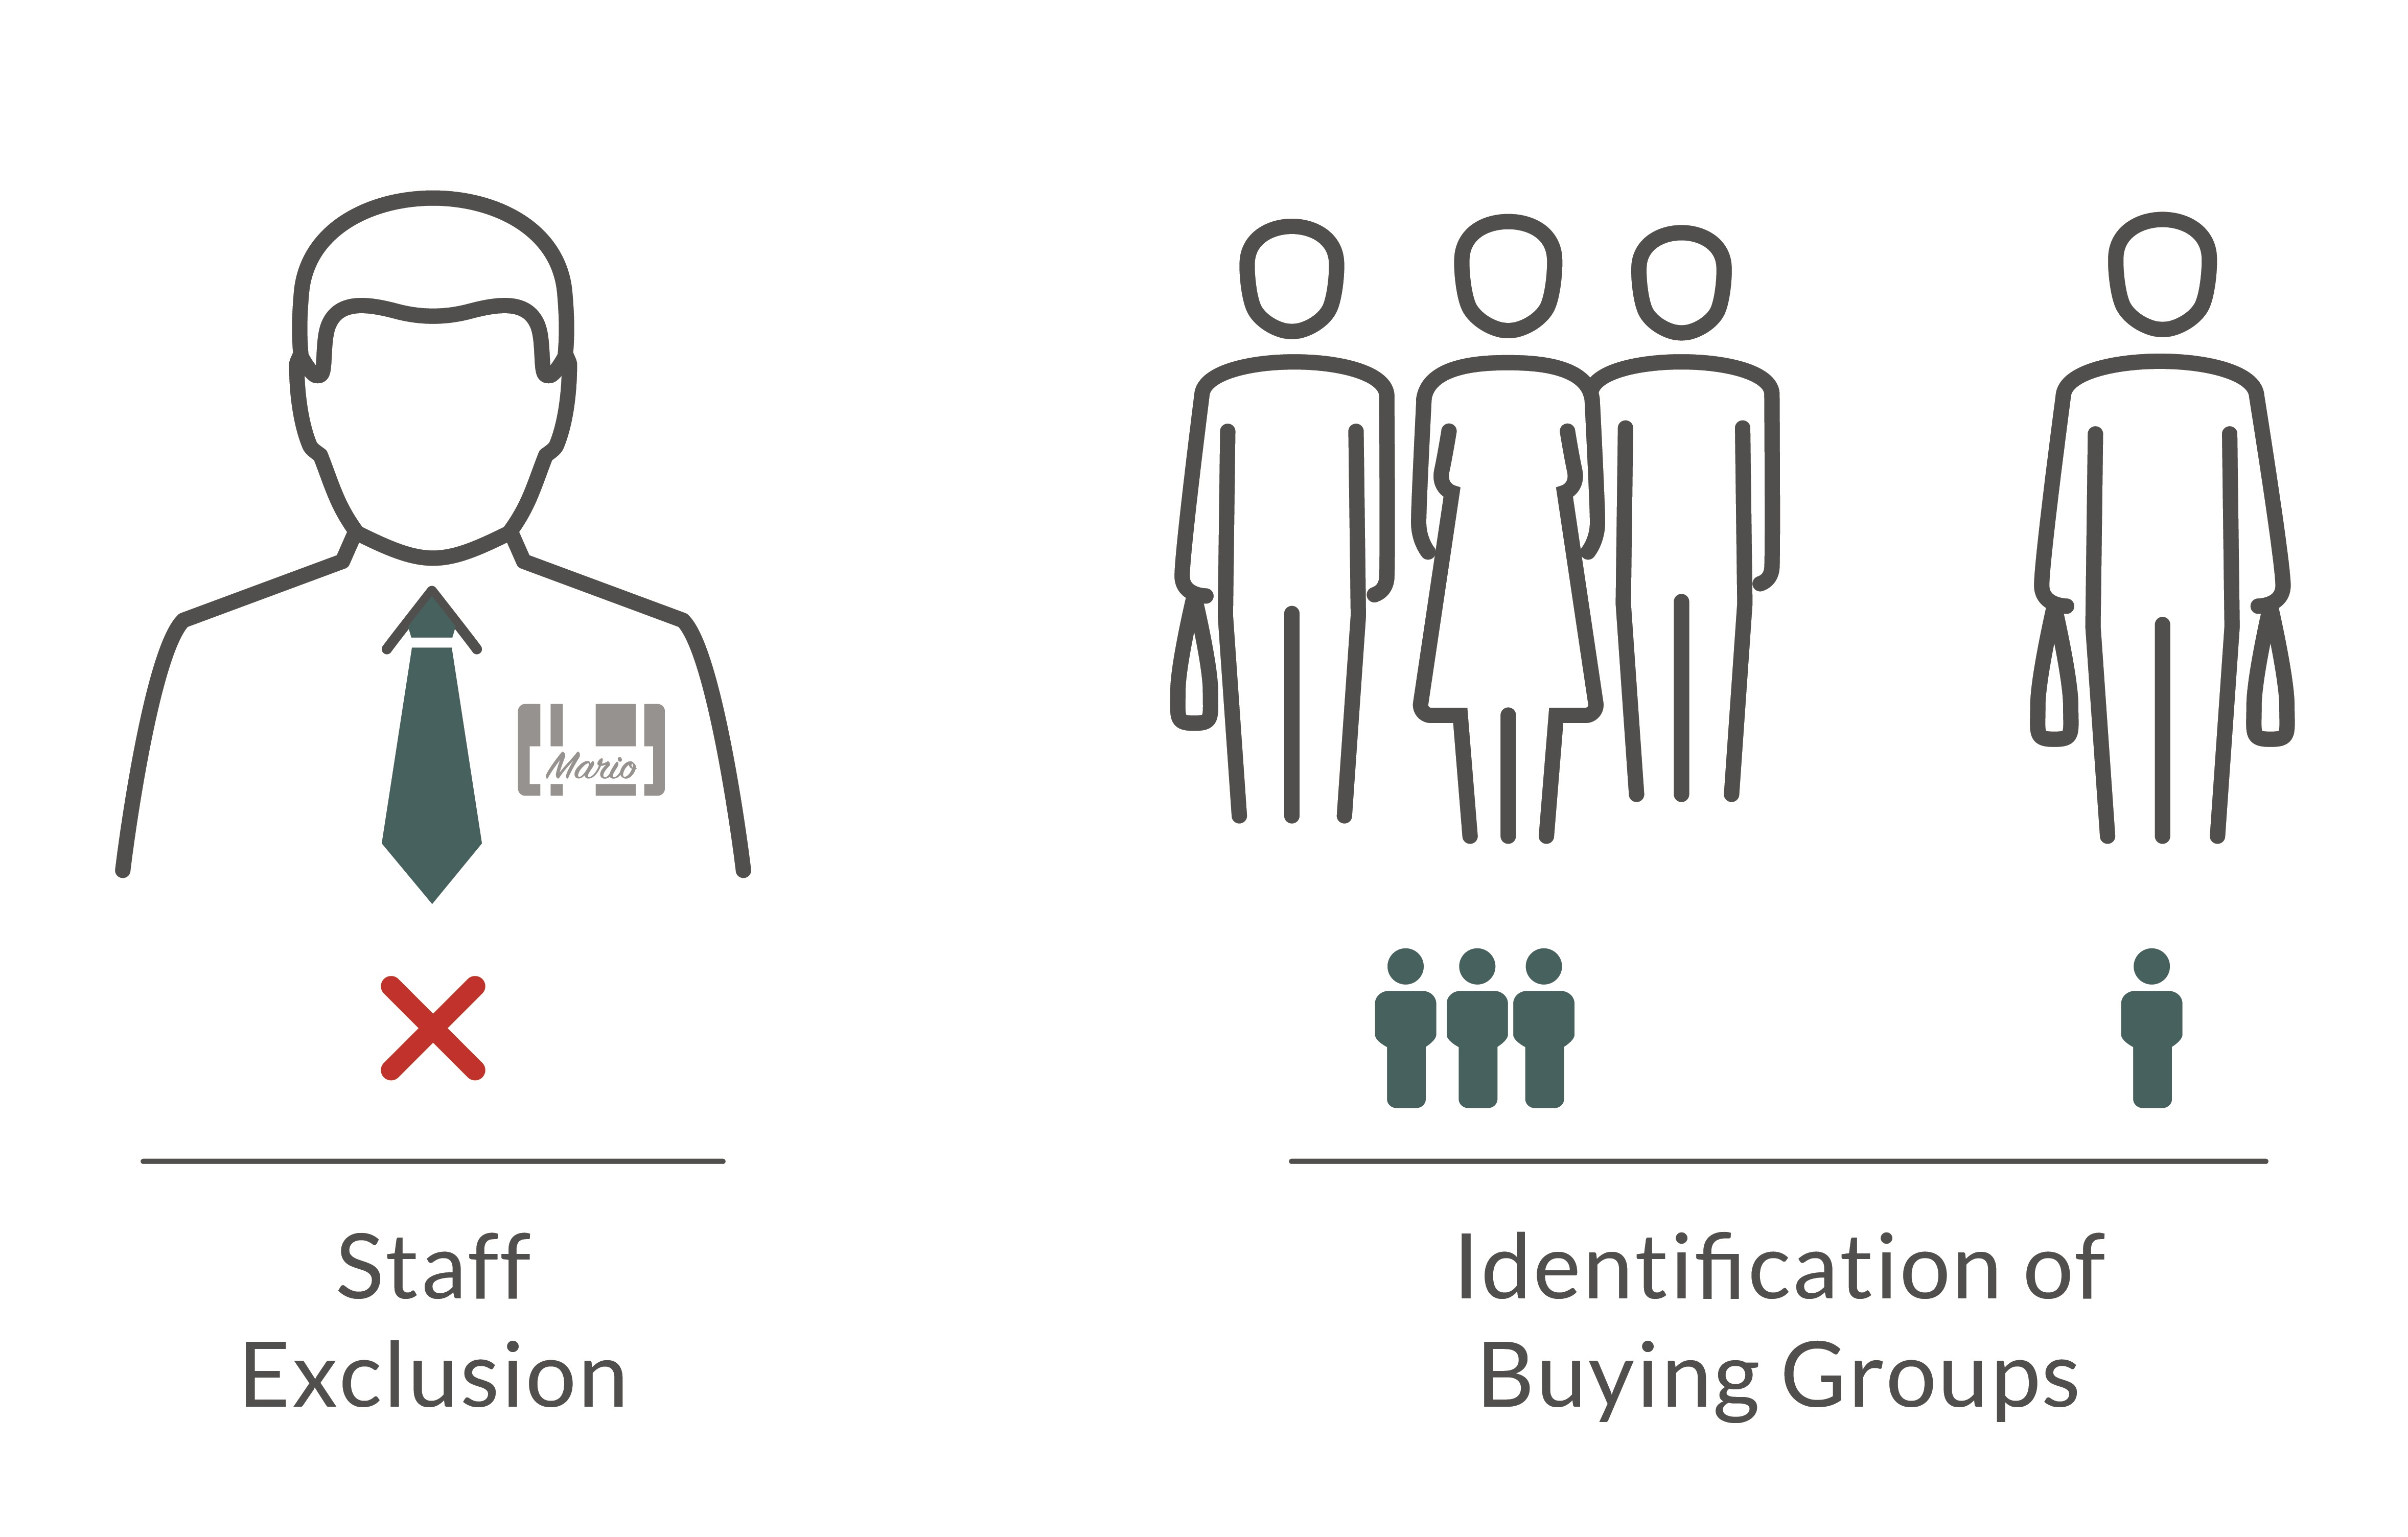 staff exclusion and recognition of buying groups